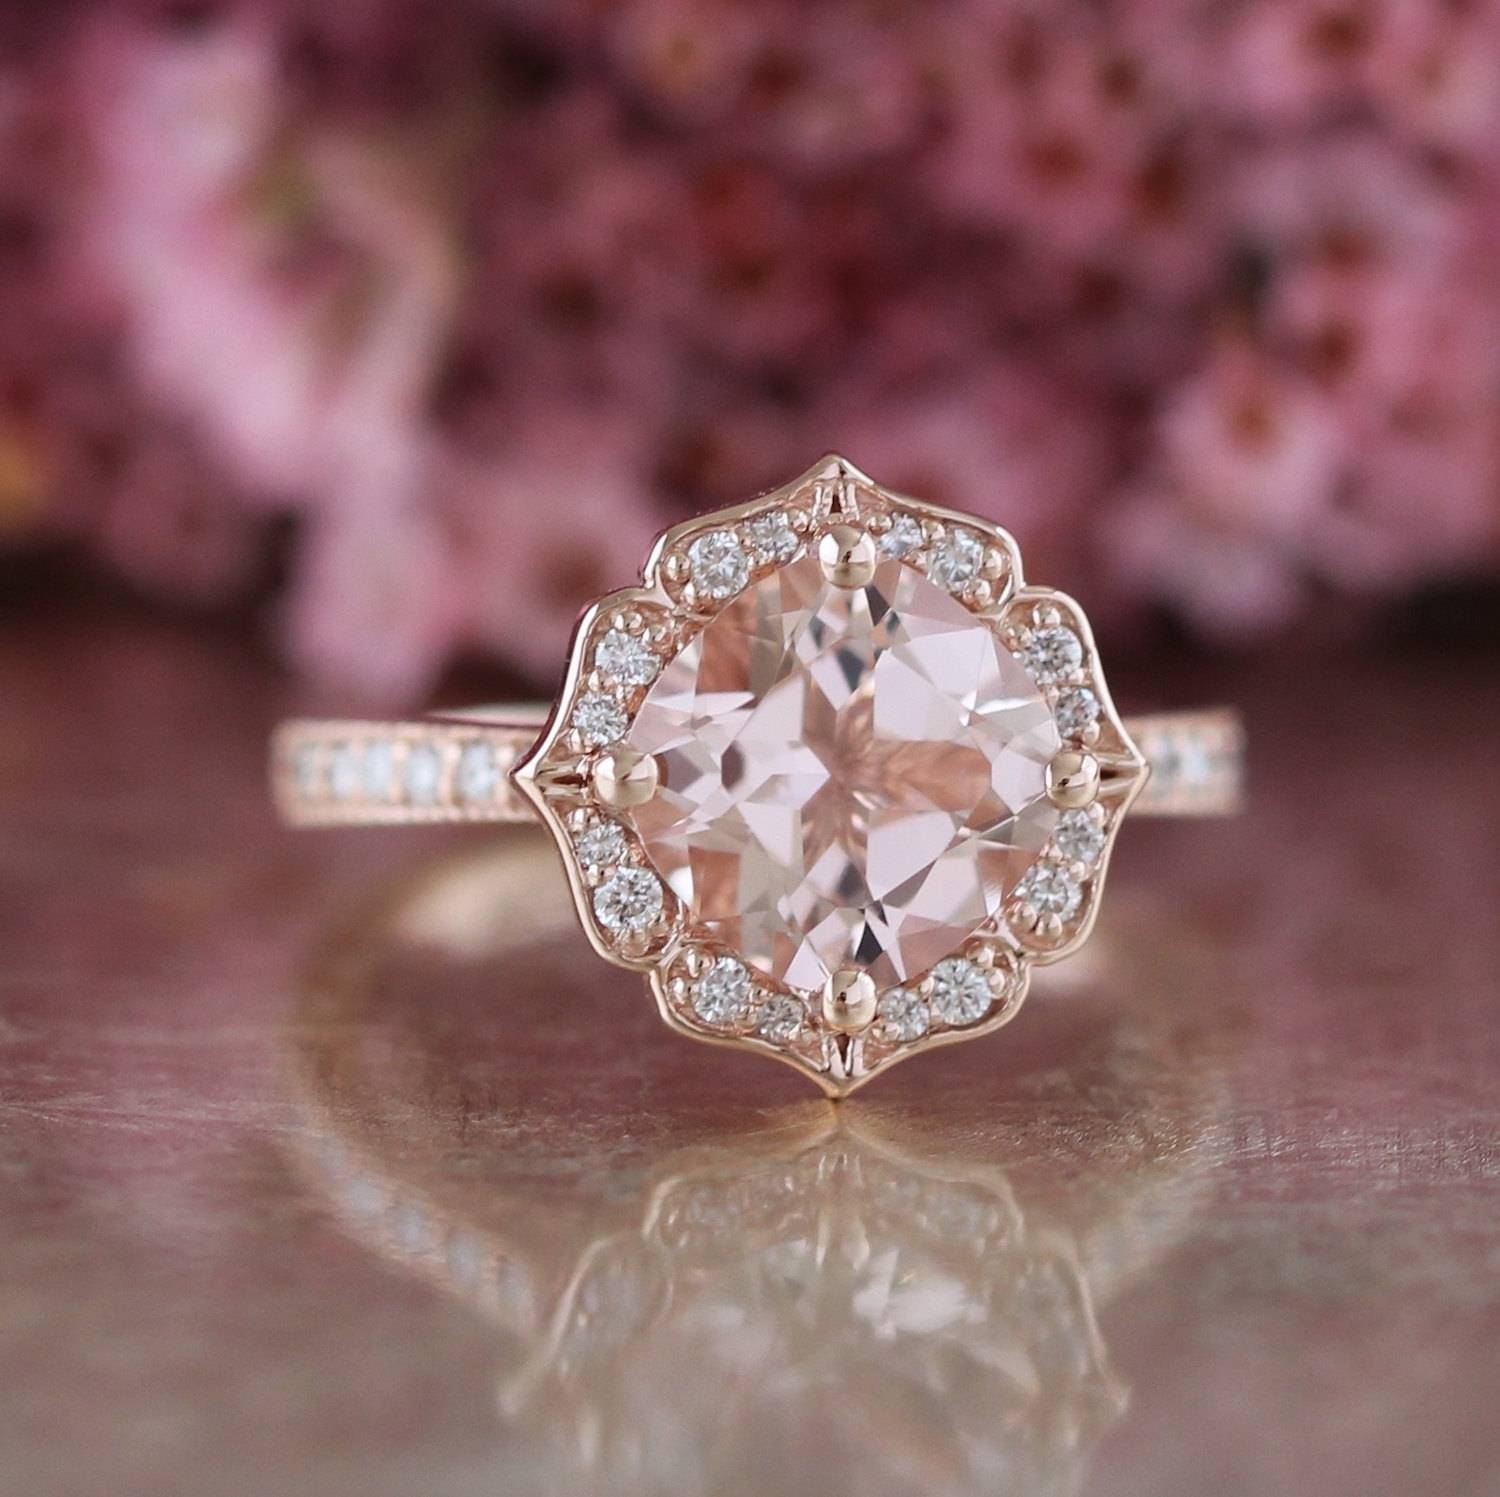 Vintage Floral Morganite Engagement Ring In 14K Rose Gold With Regard To Vintage Engagement Rings Northern Ireland (Gallery 4 of 15)